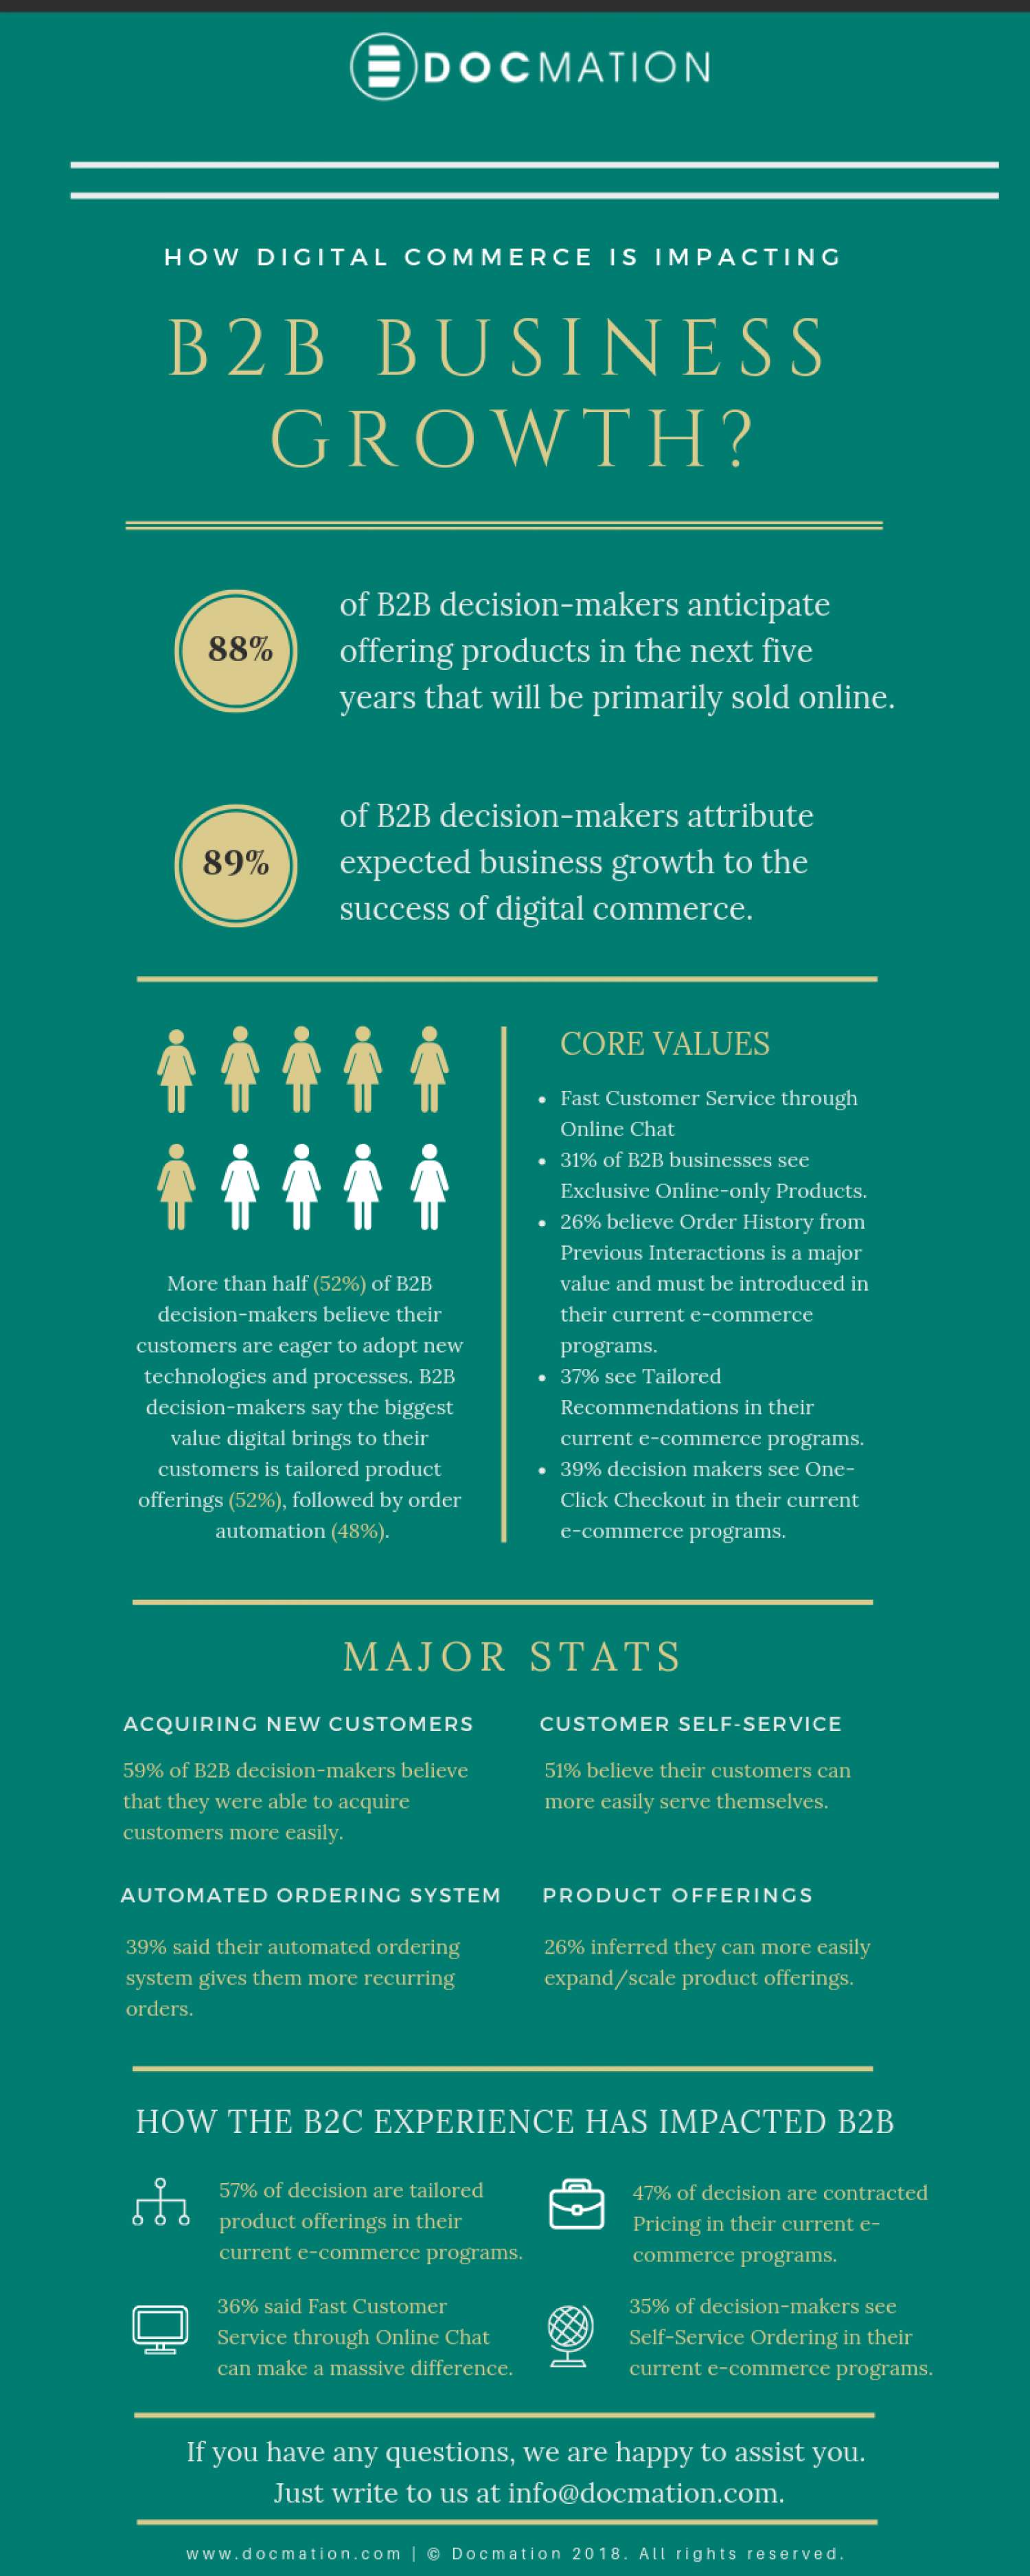 How Digital Commerce is impacting B2B business growth? Infographic